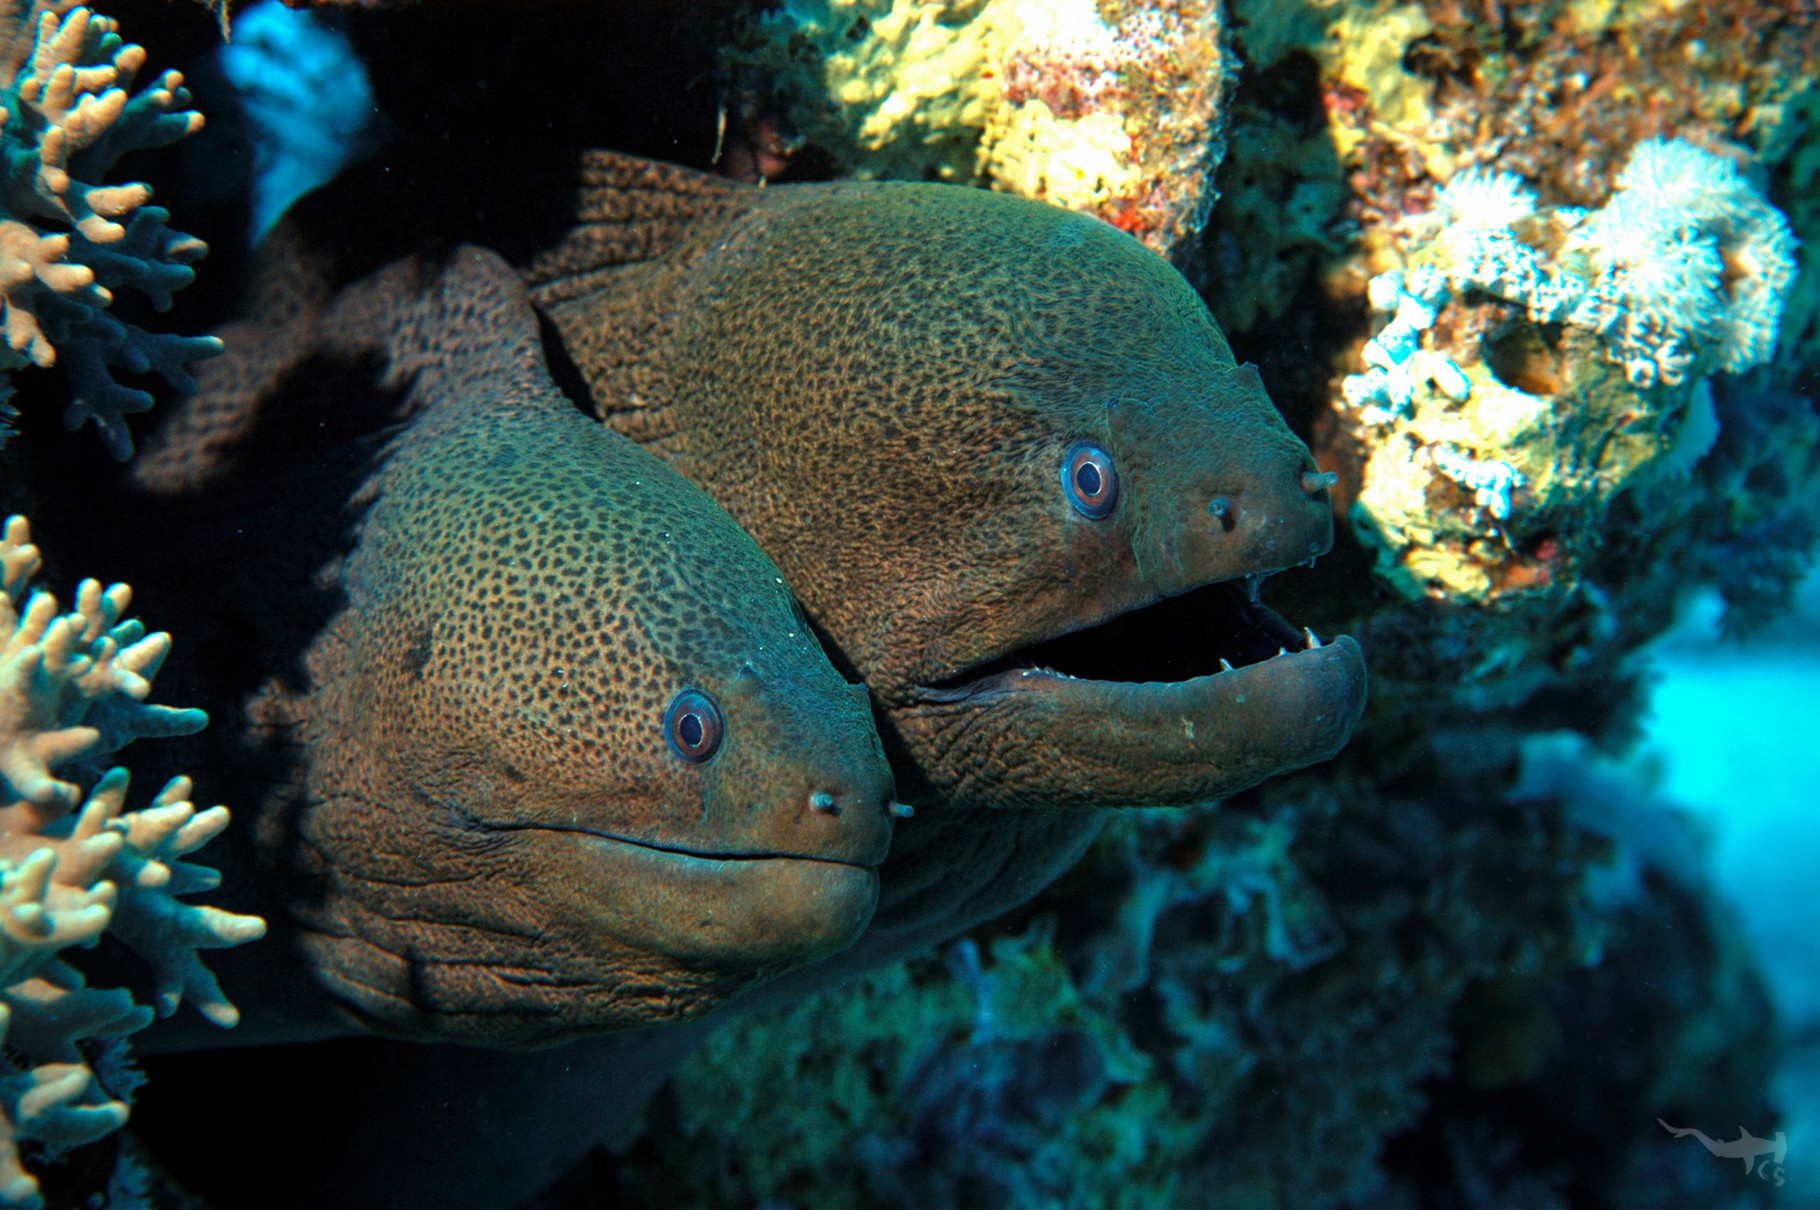 Giant Morays - Red Sea/Egypt